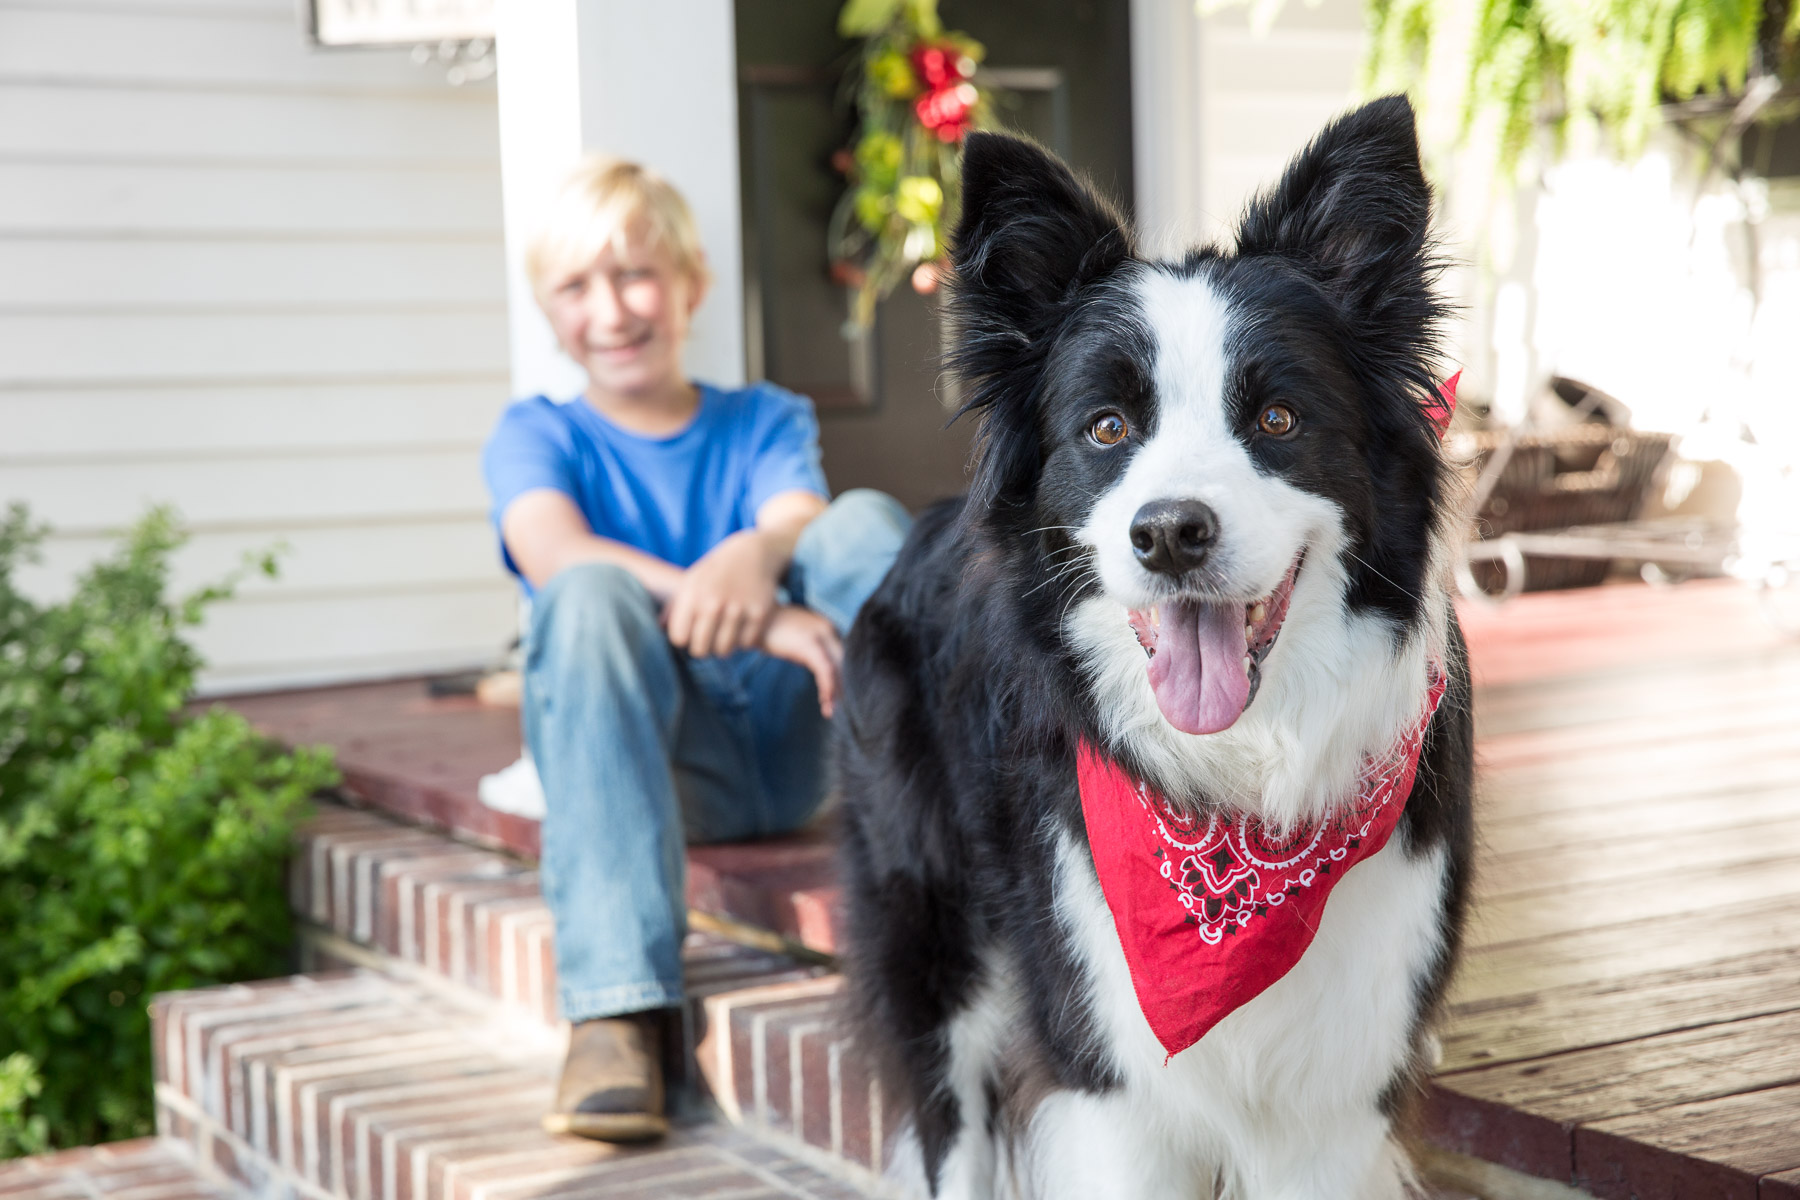 kid-with-dog-looking-camera-smiling-dog-portraits.jpg